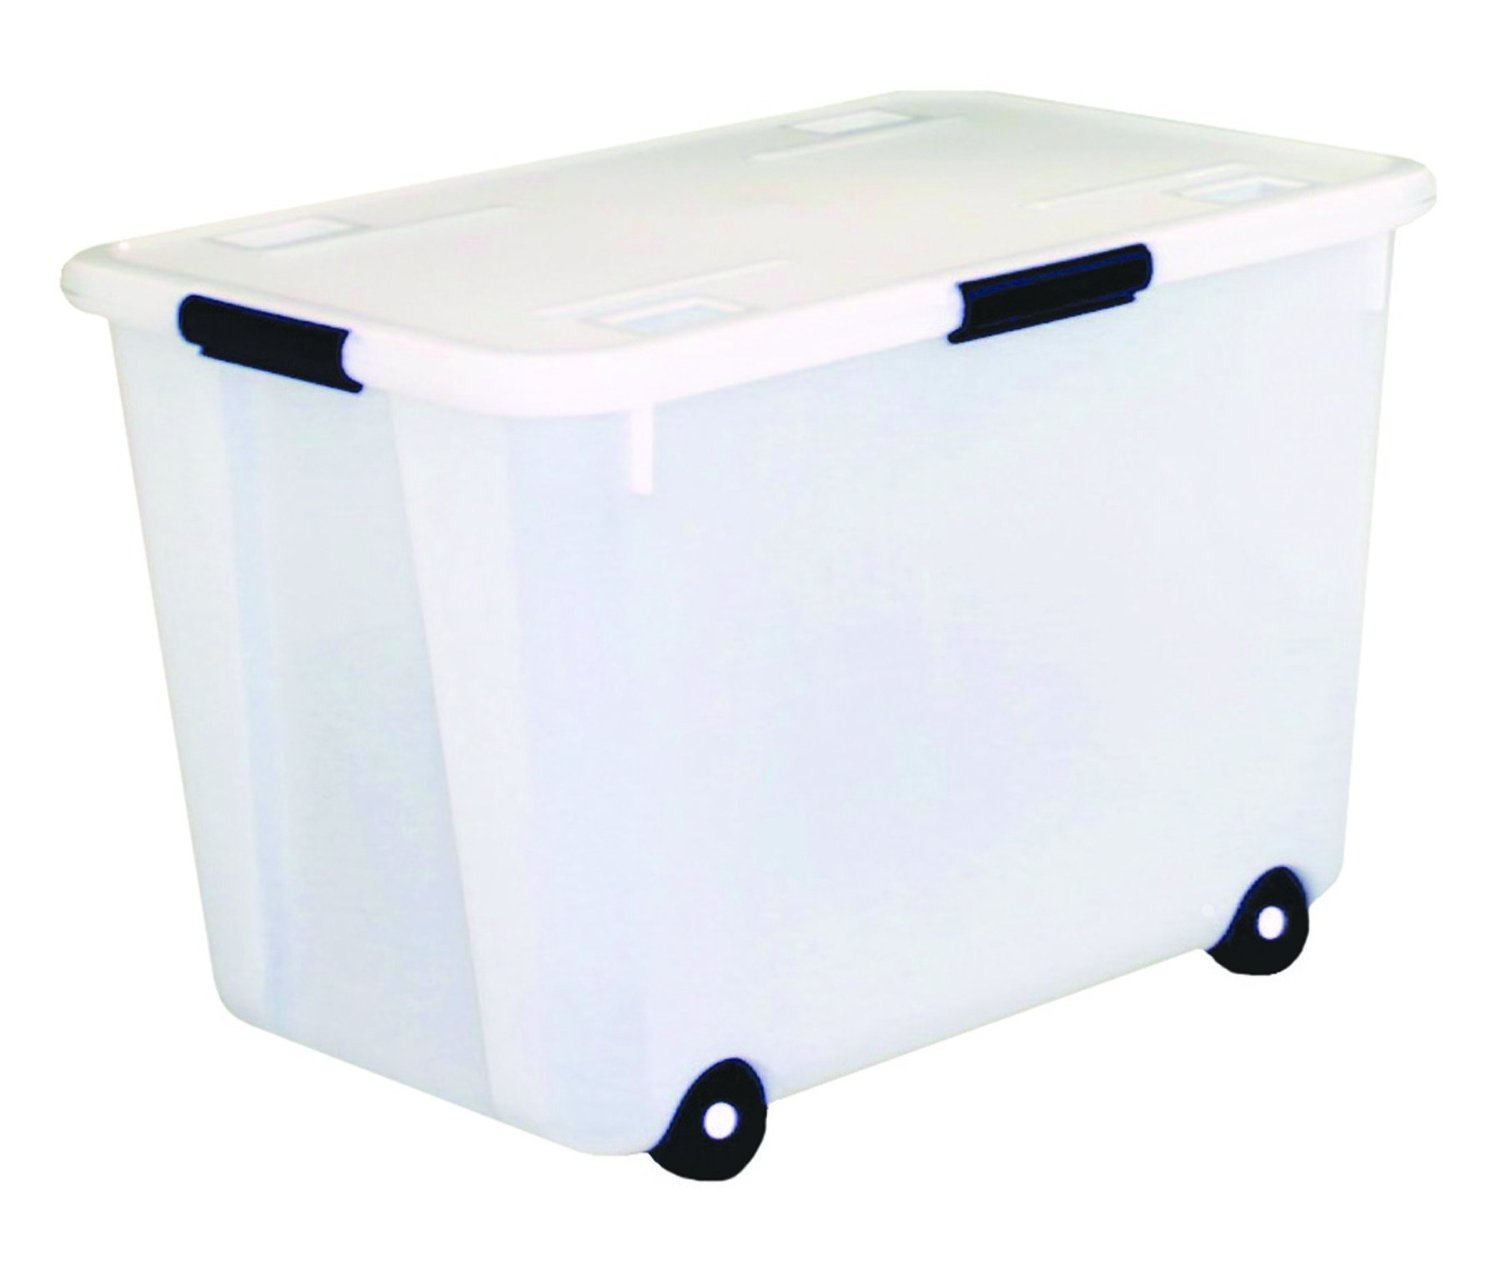 The Best Storage Bins with Wheels